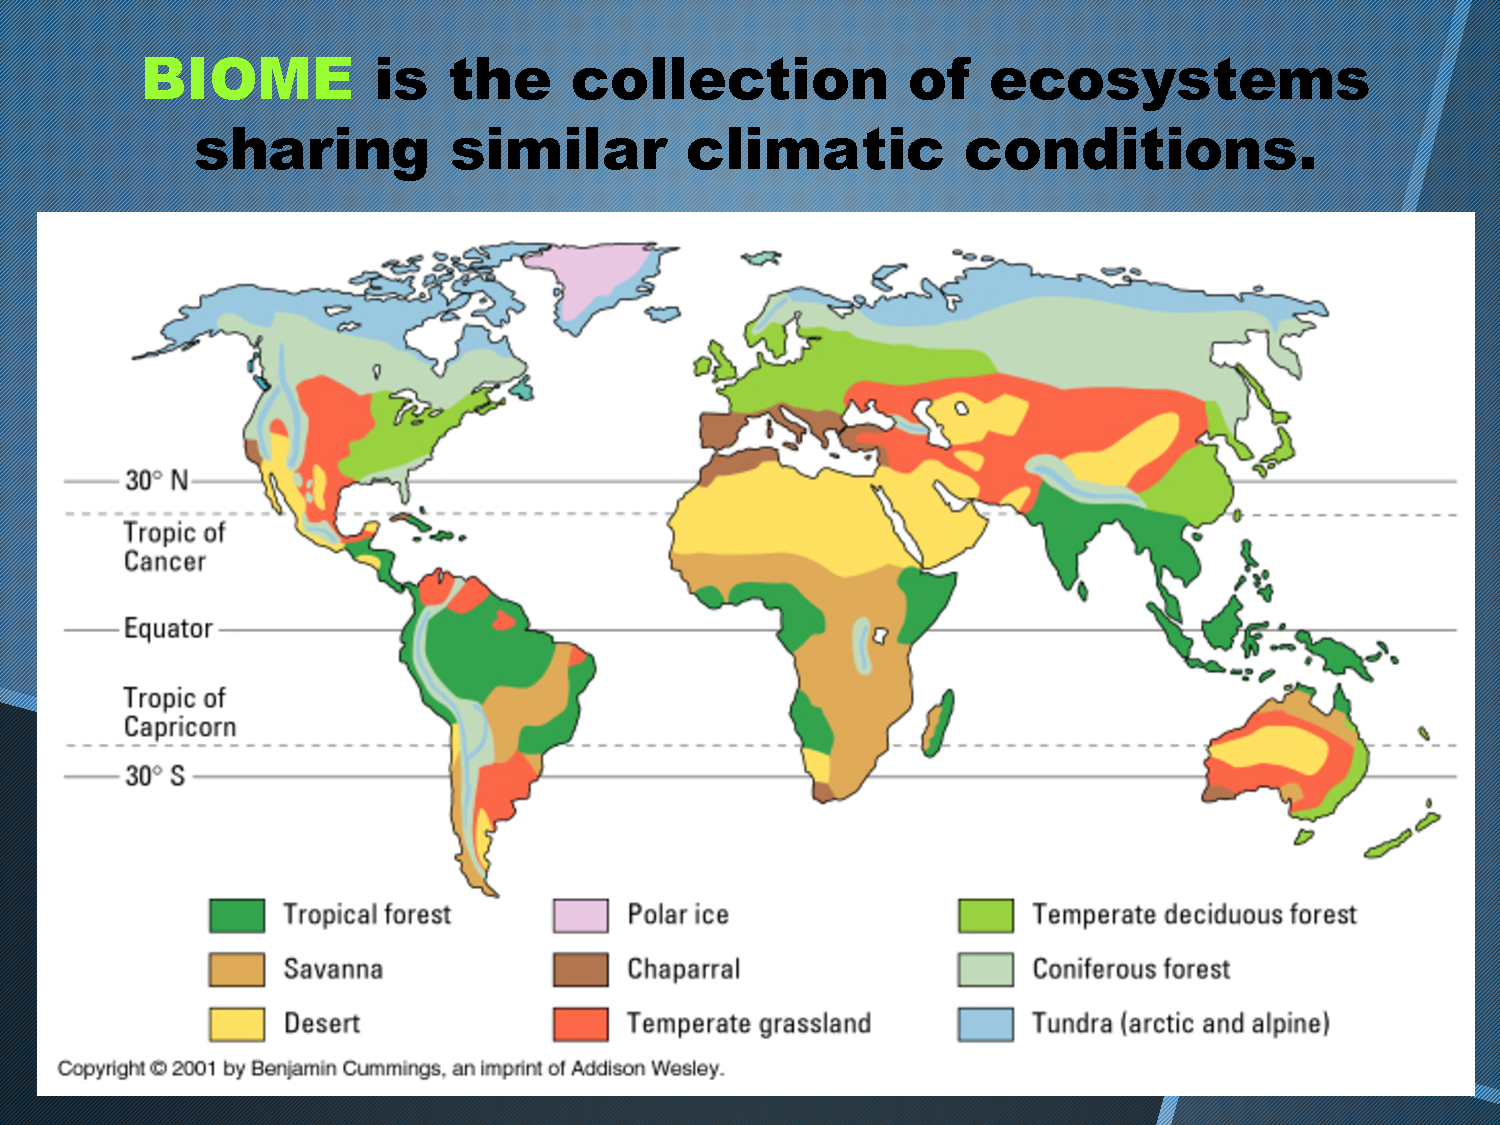 Map of Biome Locations in the World   Temperate Deciduous Forest